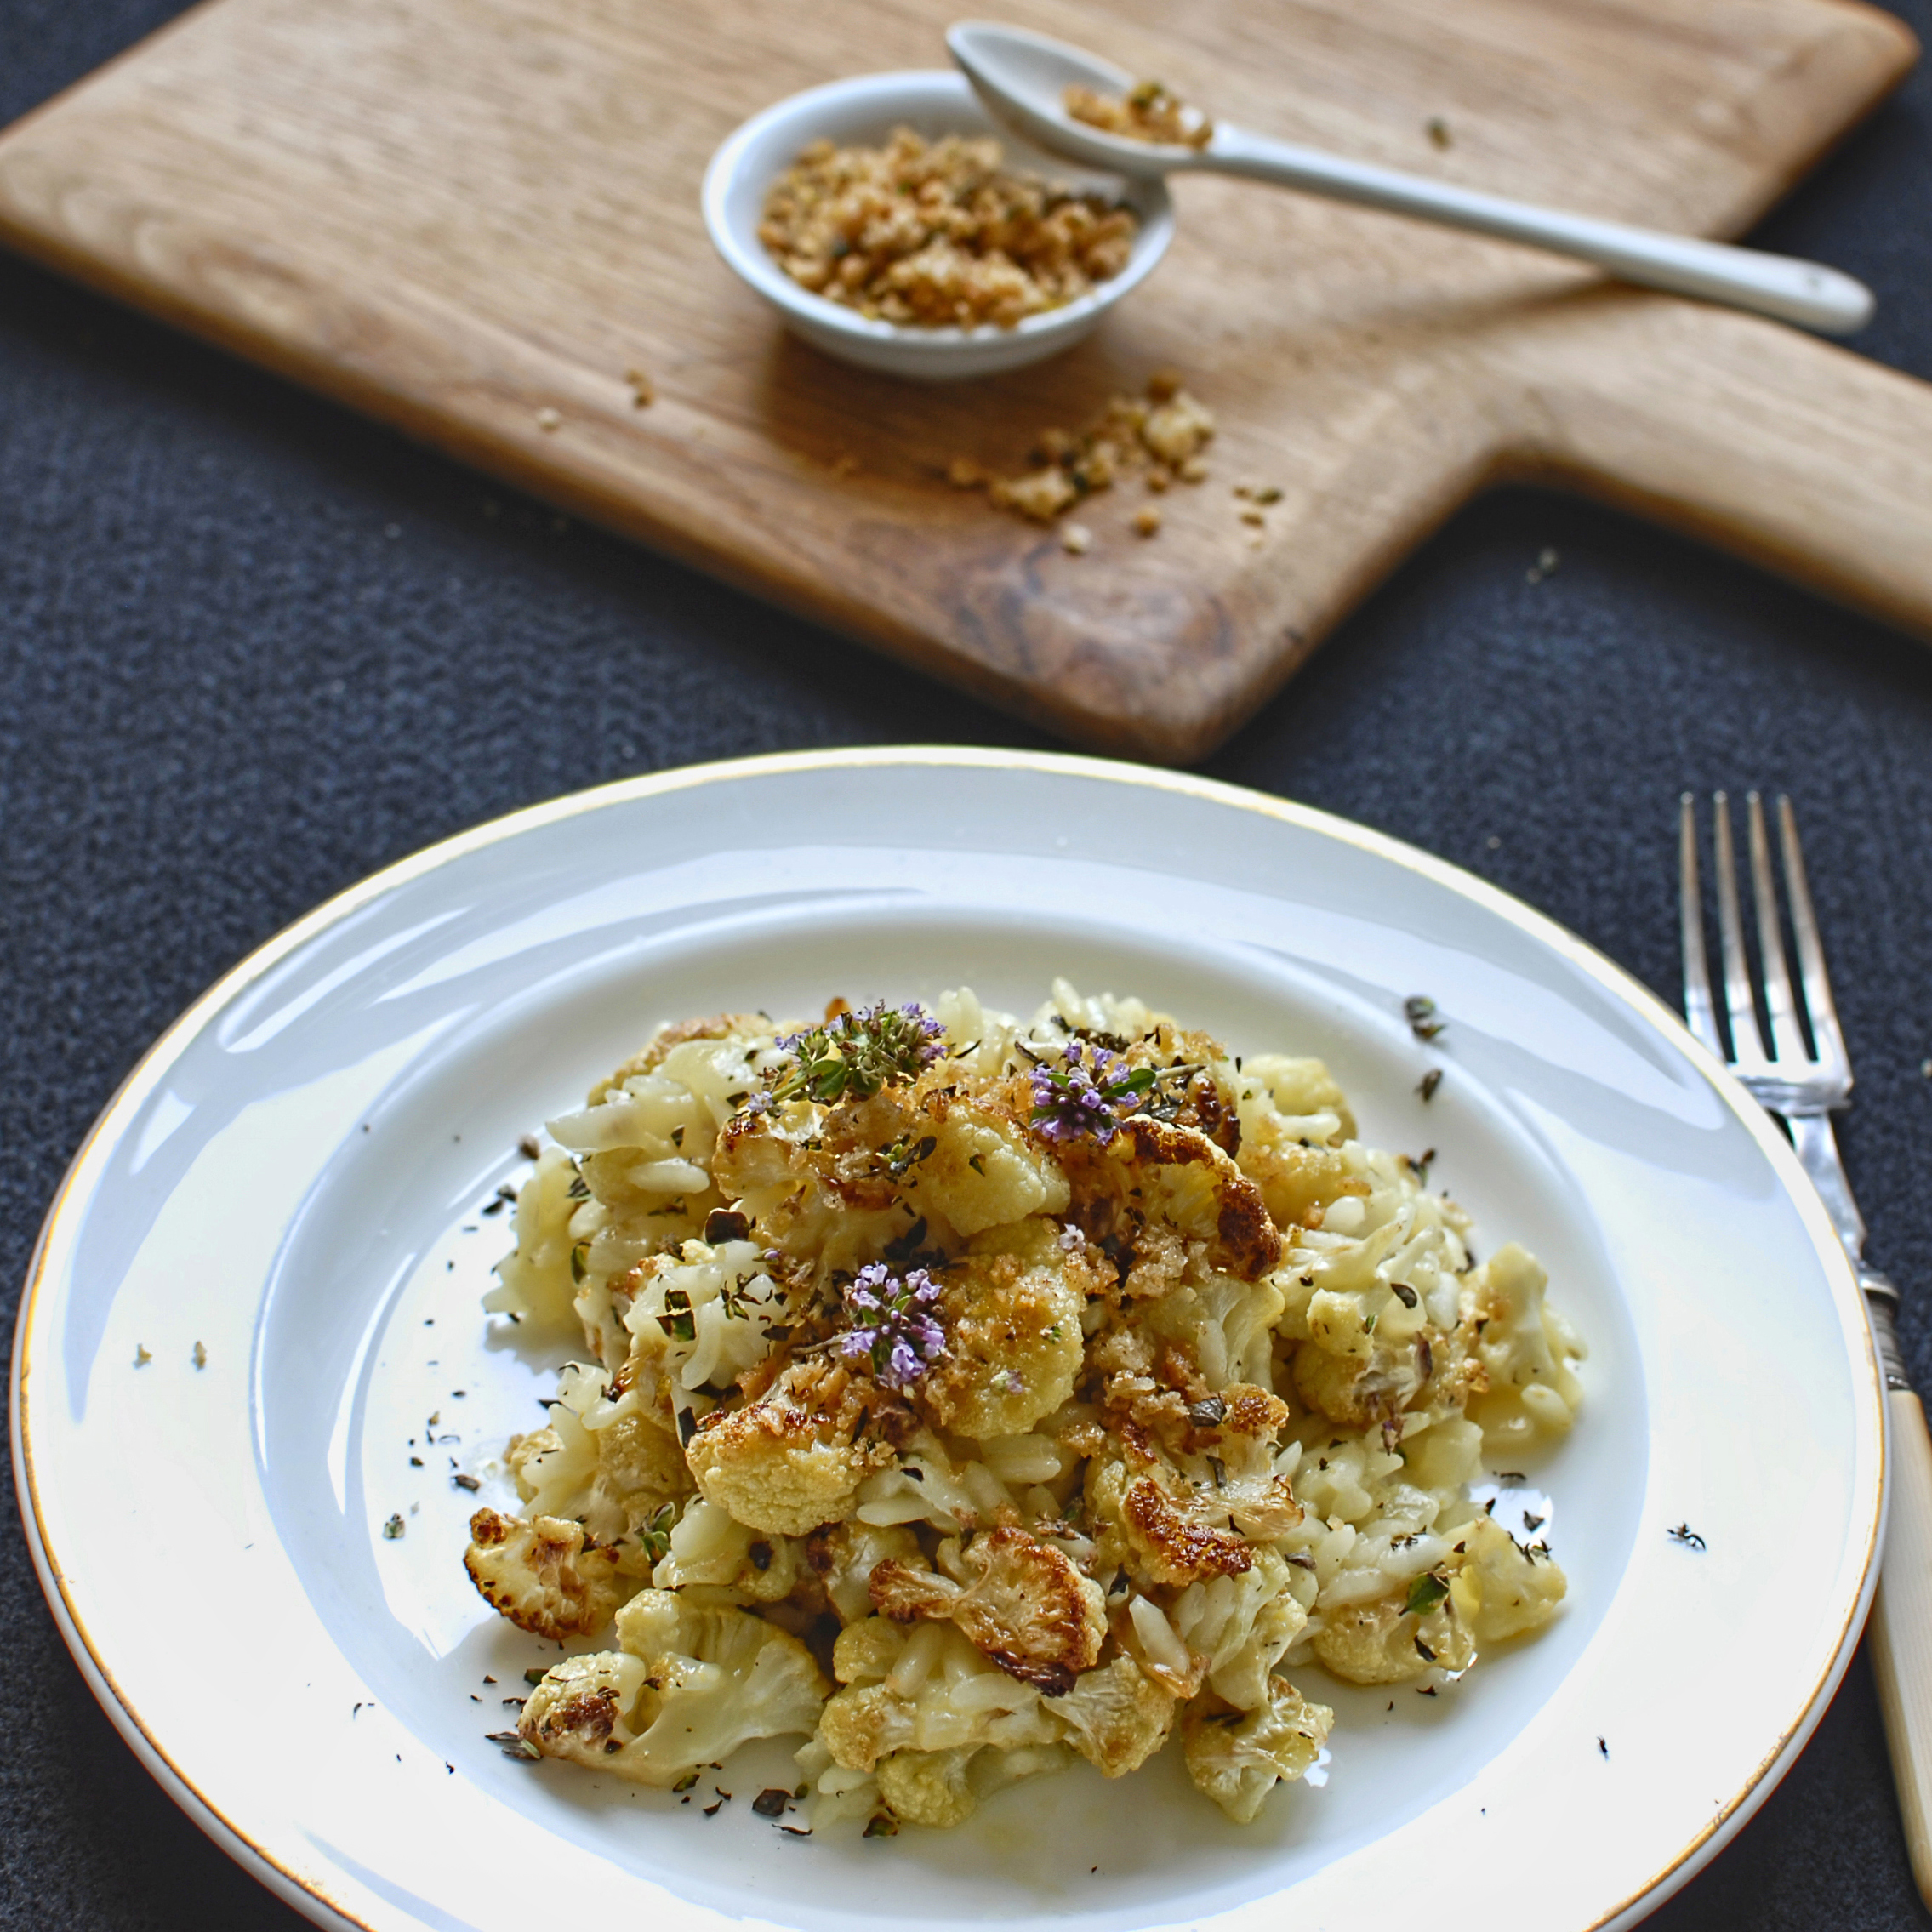 Watch Broad Bean, Lemon and Thyme Risotto Recipe video